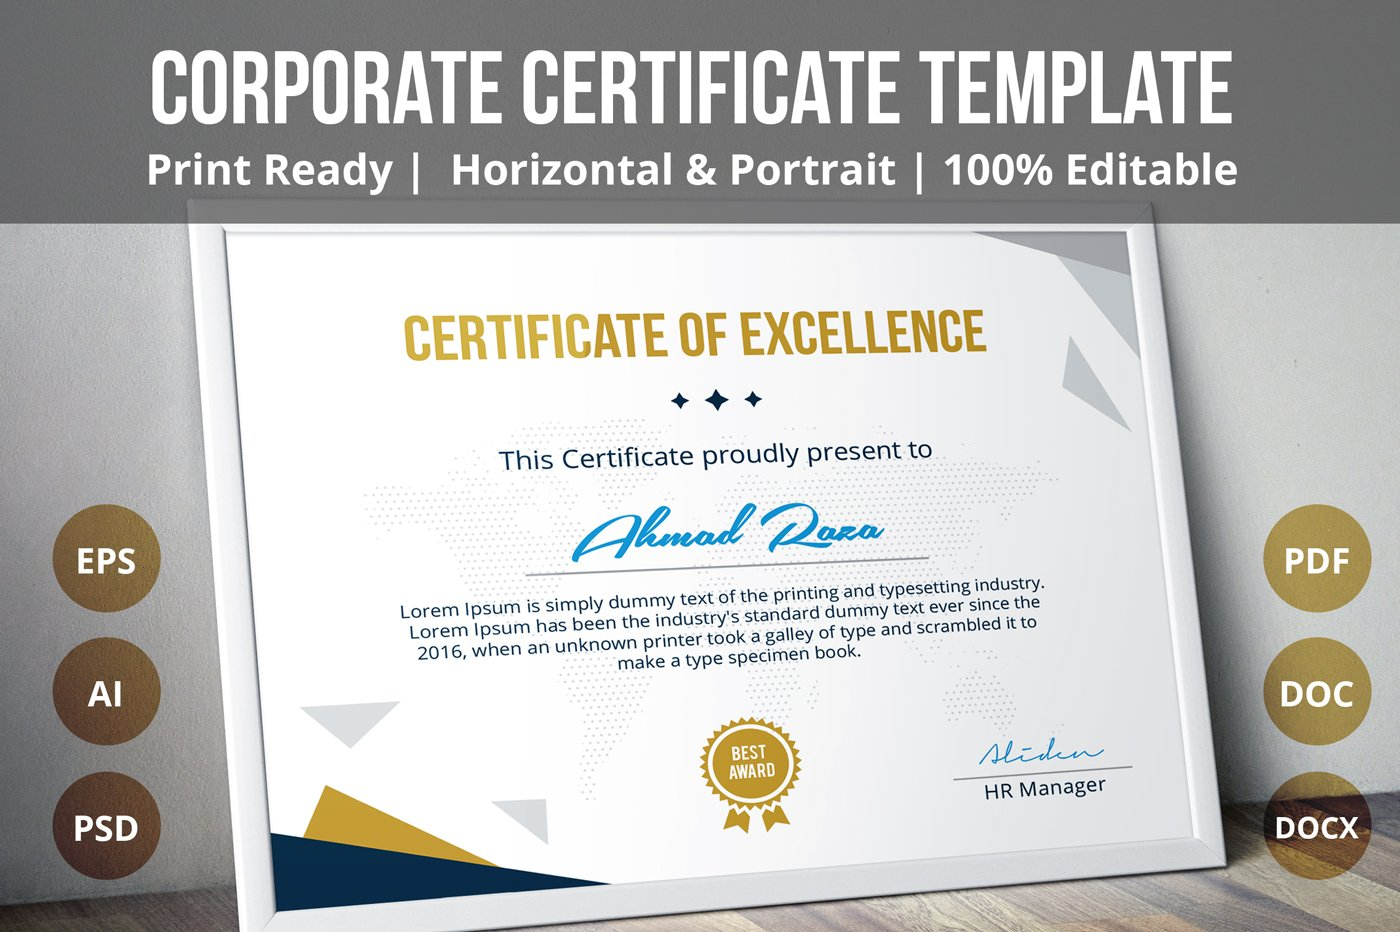 Multipurpose certificate template stationery templates multipurpose certificate template stationery templates creative market xflitez Image collections